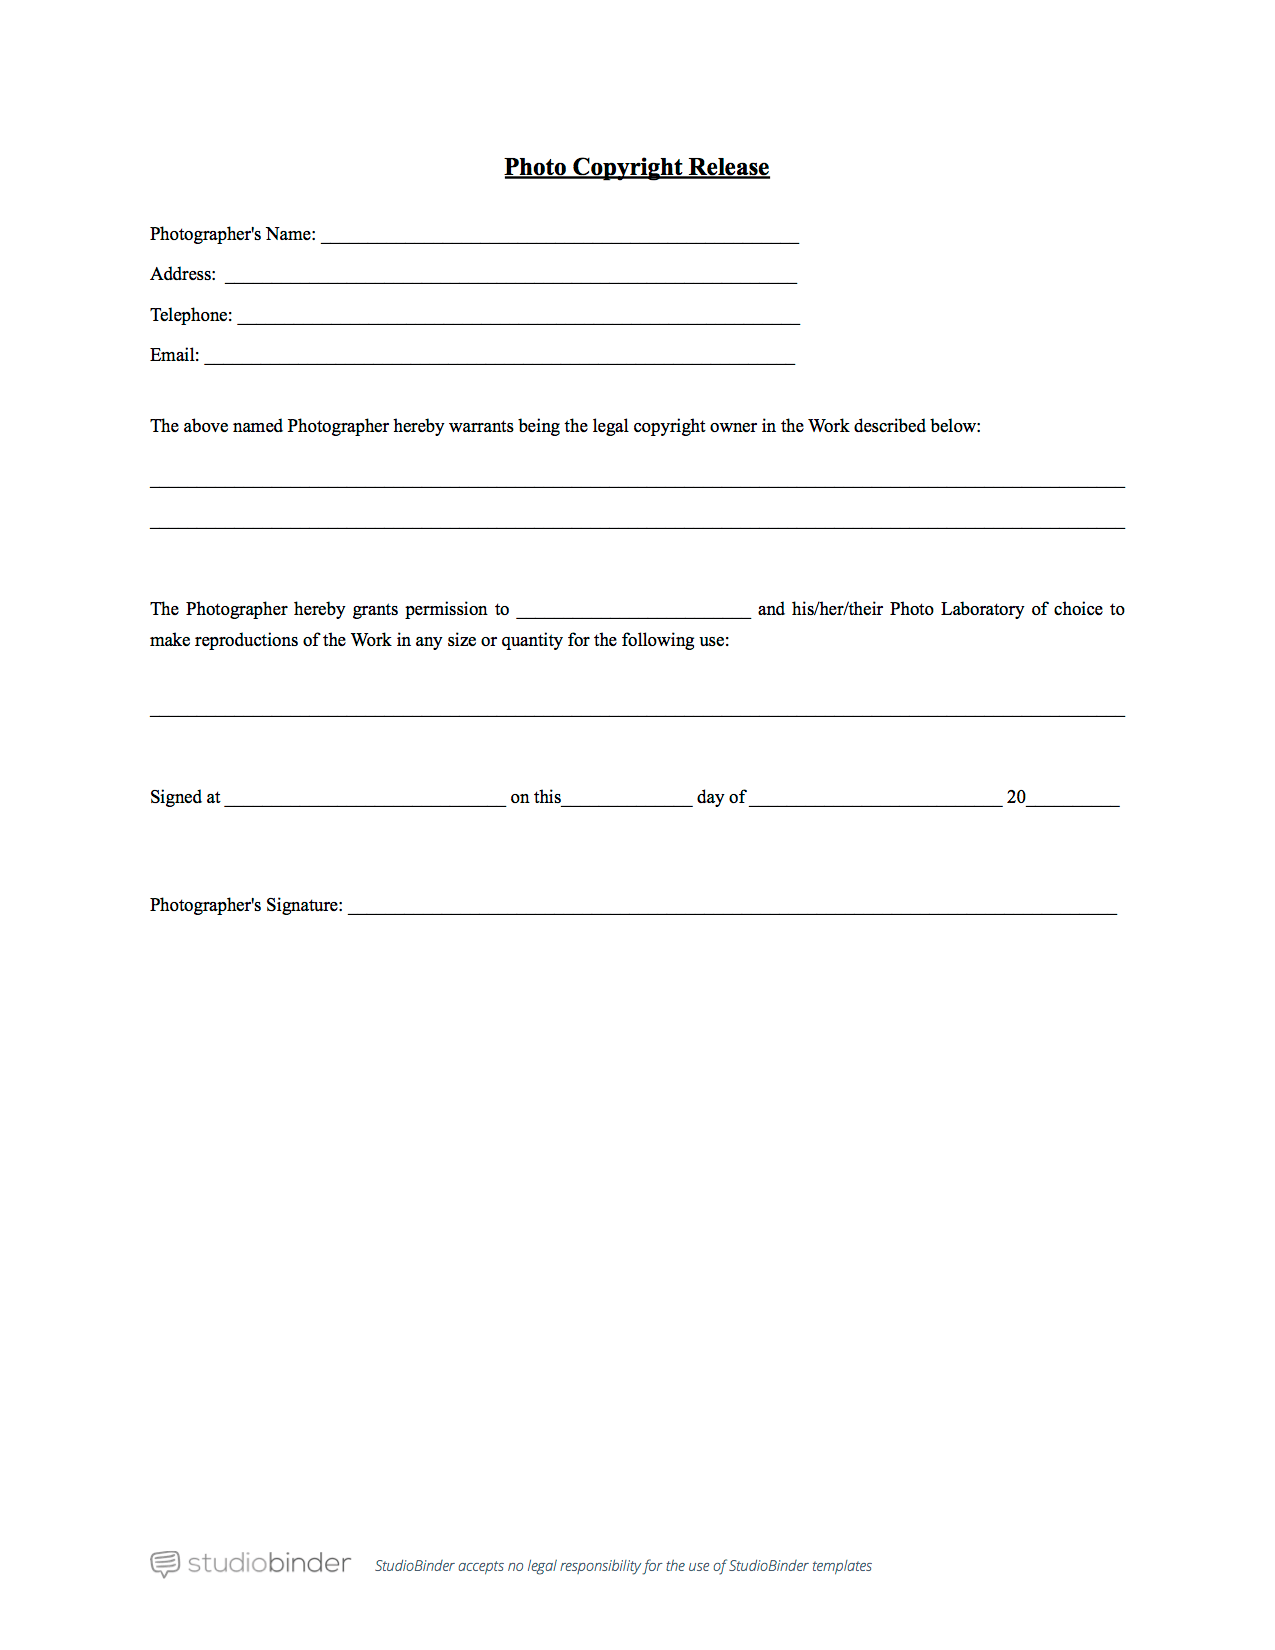 Why You Should Have a Photo Release Form Template – Client Information Form Template